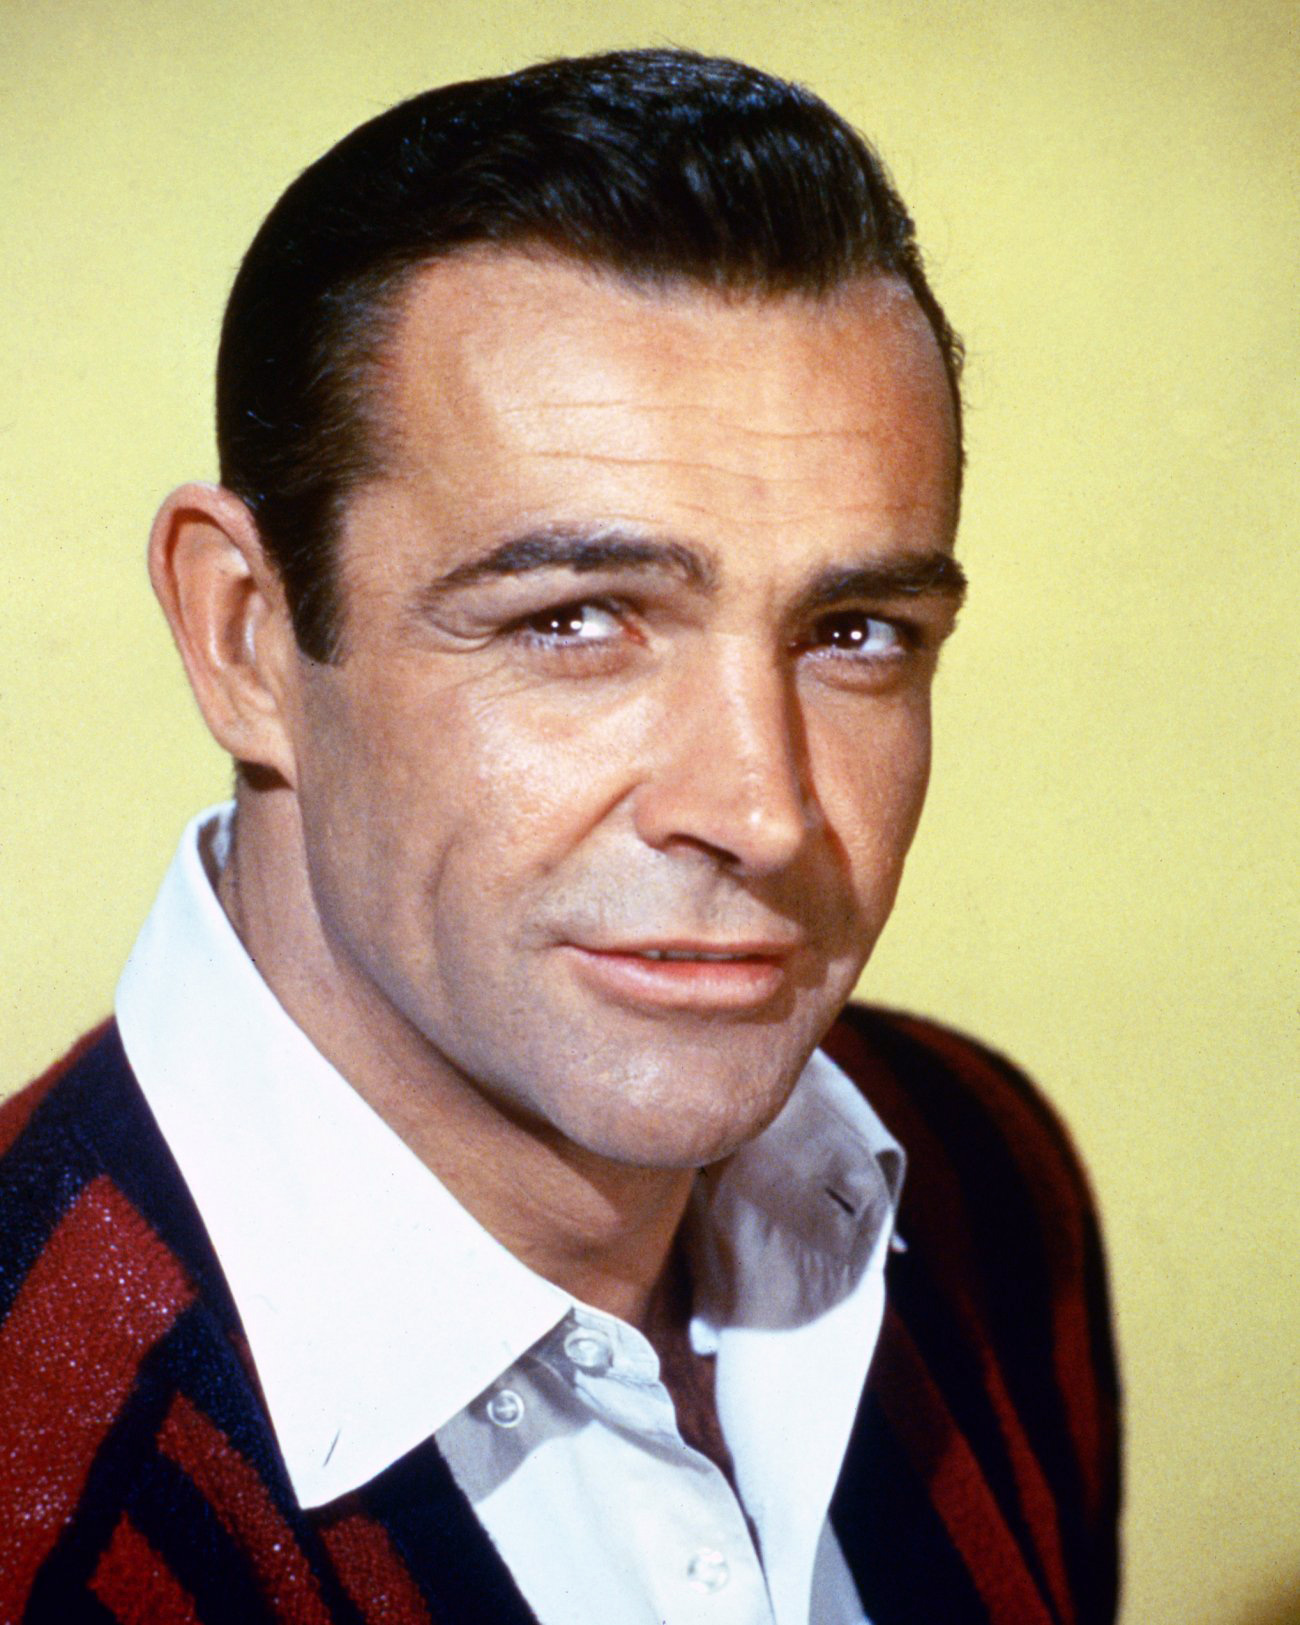 sean connery Bond was an expert sailor although very little of bond's past is directly addressed in sean connery's films, it is assumed that his bond continues to share the common background laid out by the ian fleming novels.